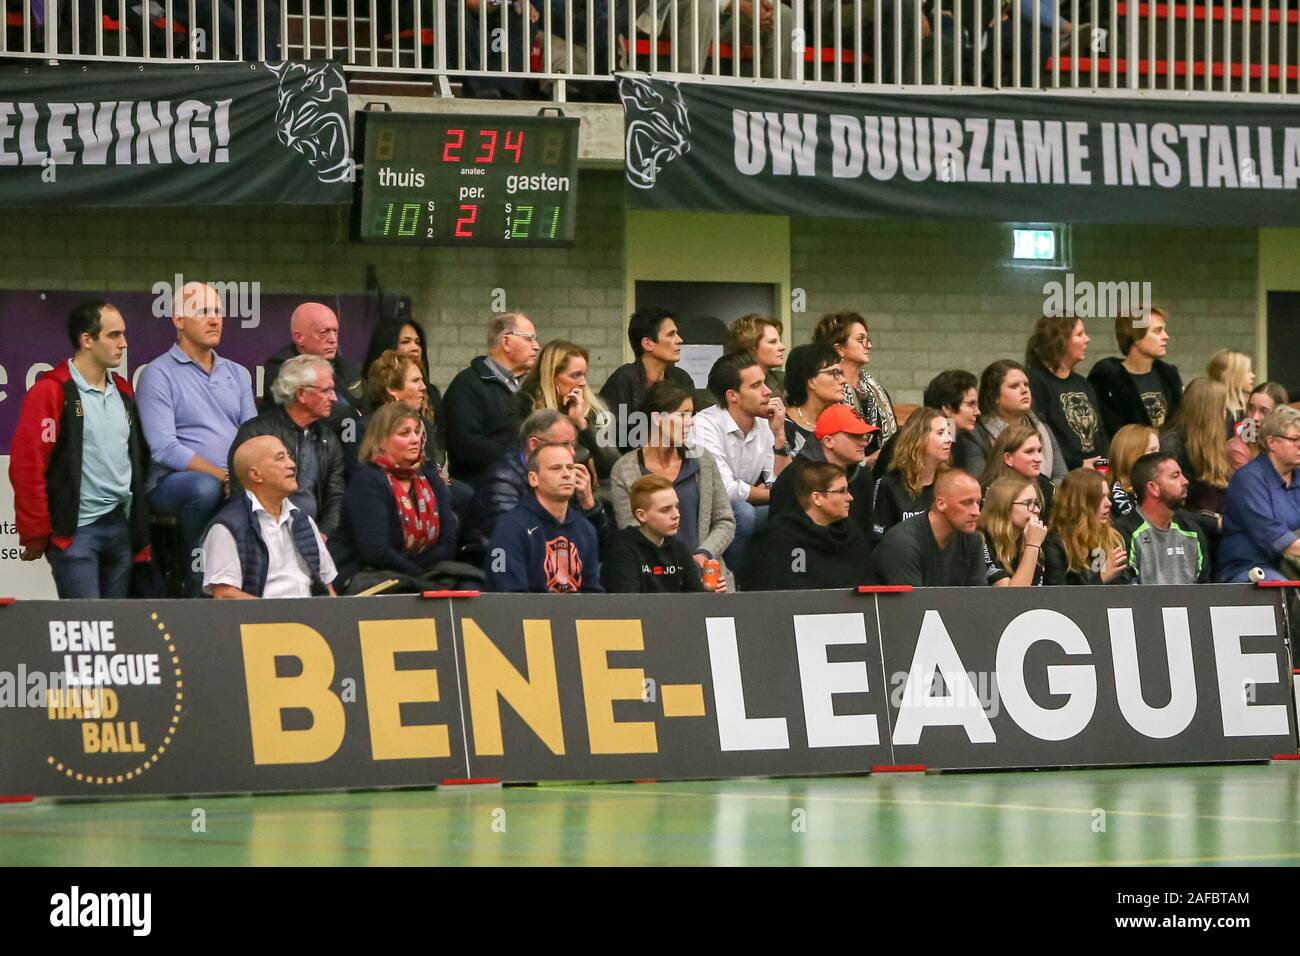 BENE-League Handball